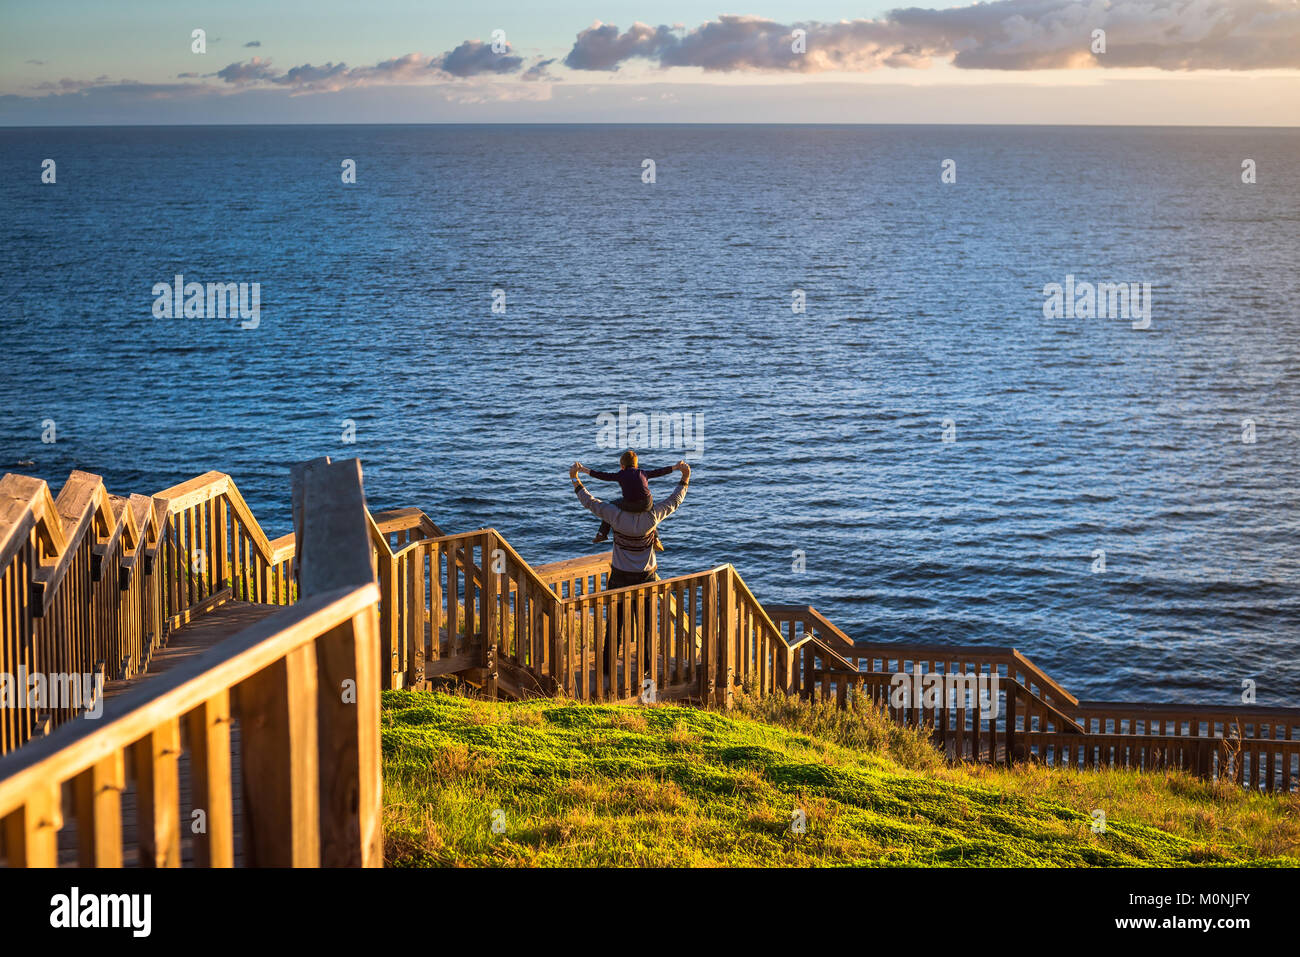 Father giving his son piggyback ride at Hallett Cove boardwalk while enjoying sunset, South Australia - Stock Image